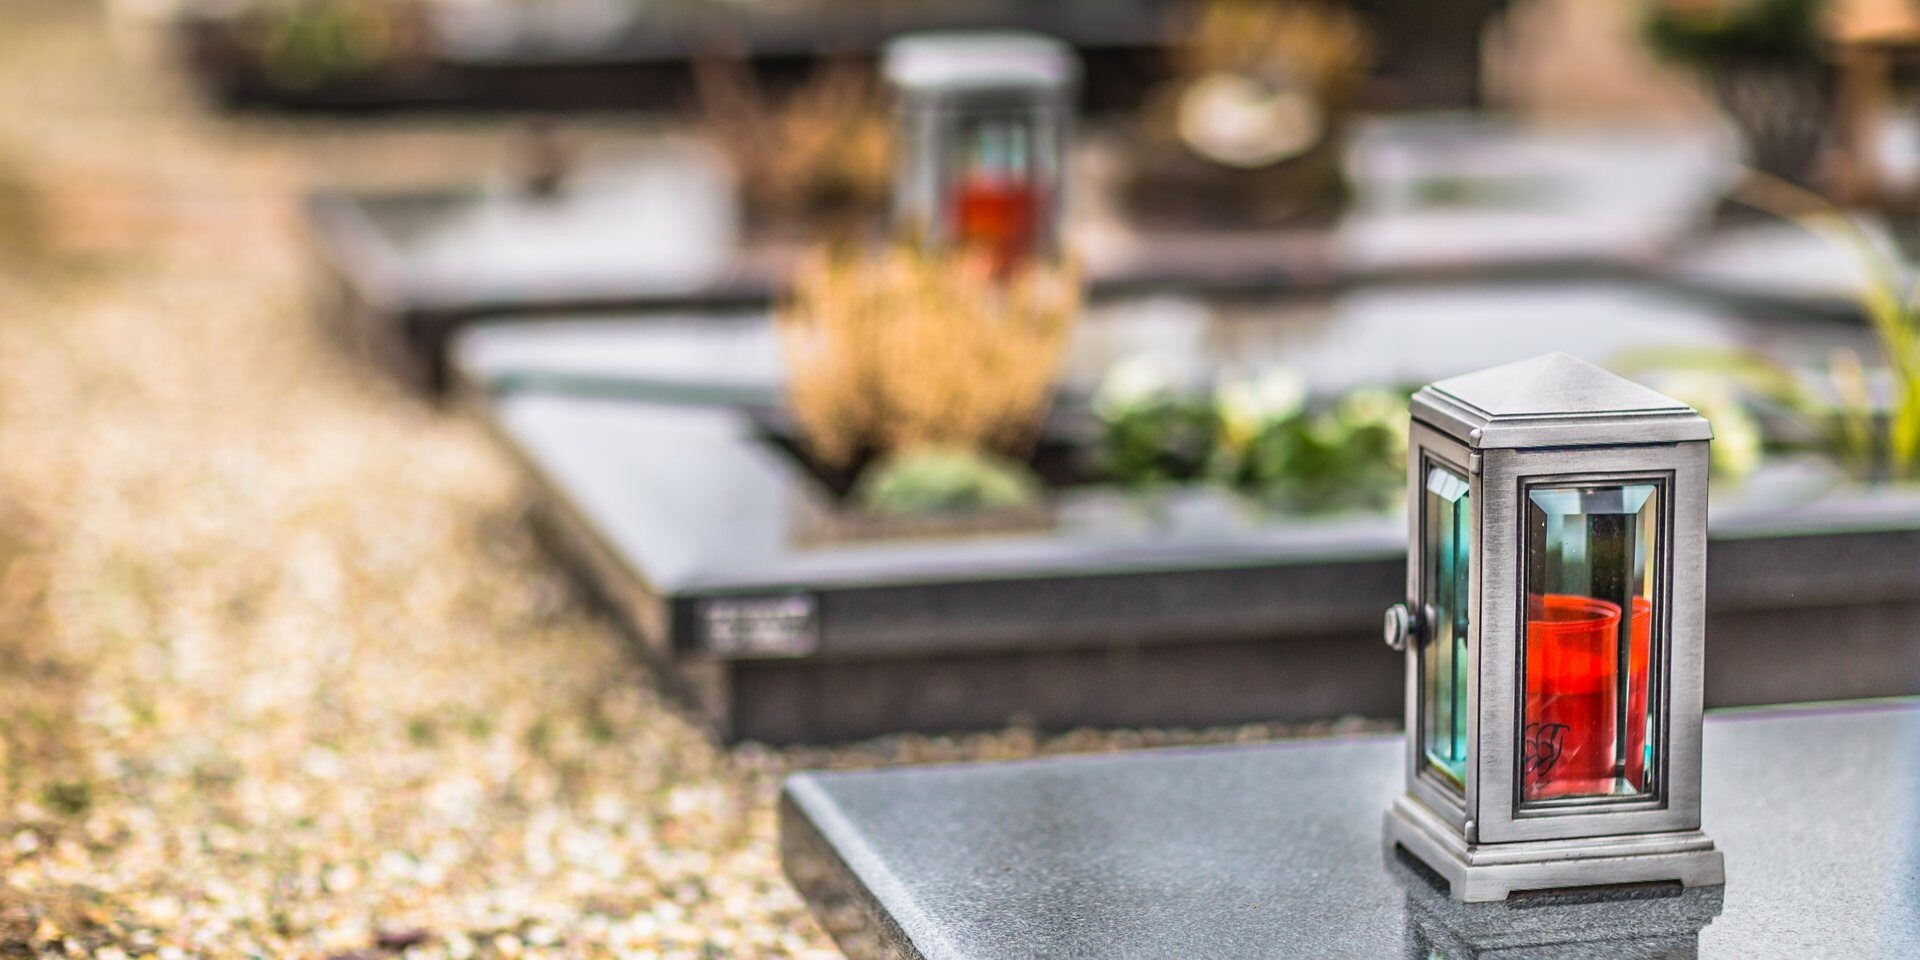 Graves in cemeteries are now equipped with technology